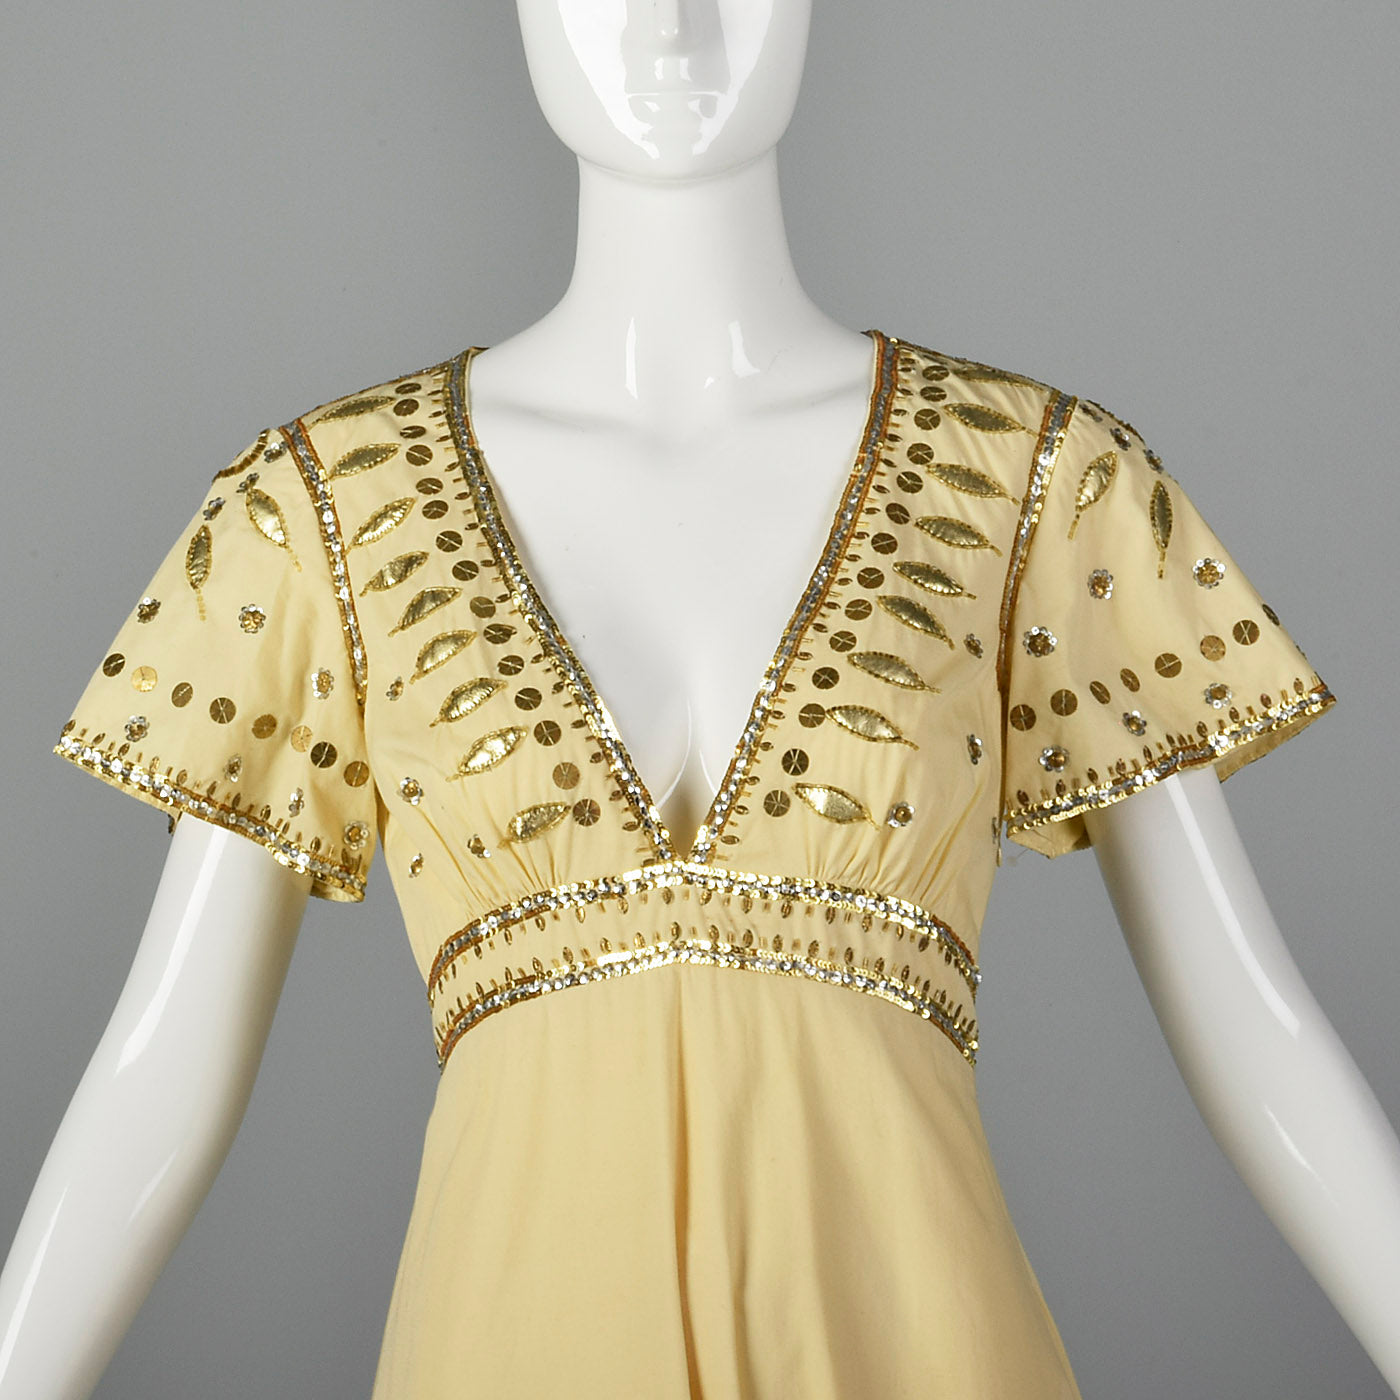 2000s Temperley Cream Dress with Beading